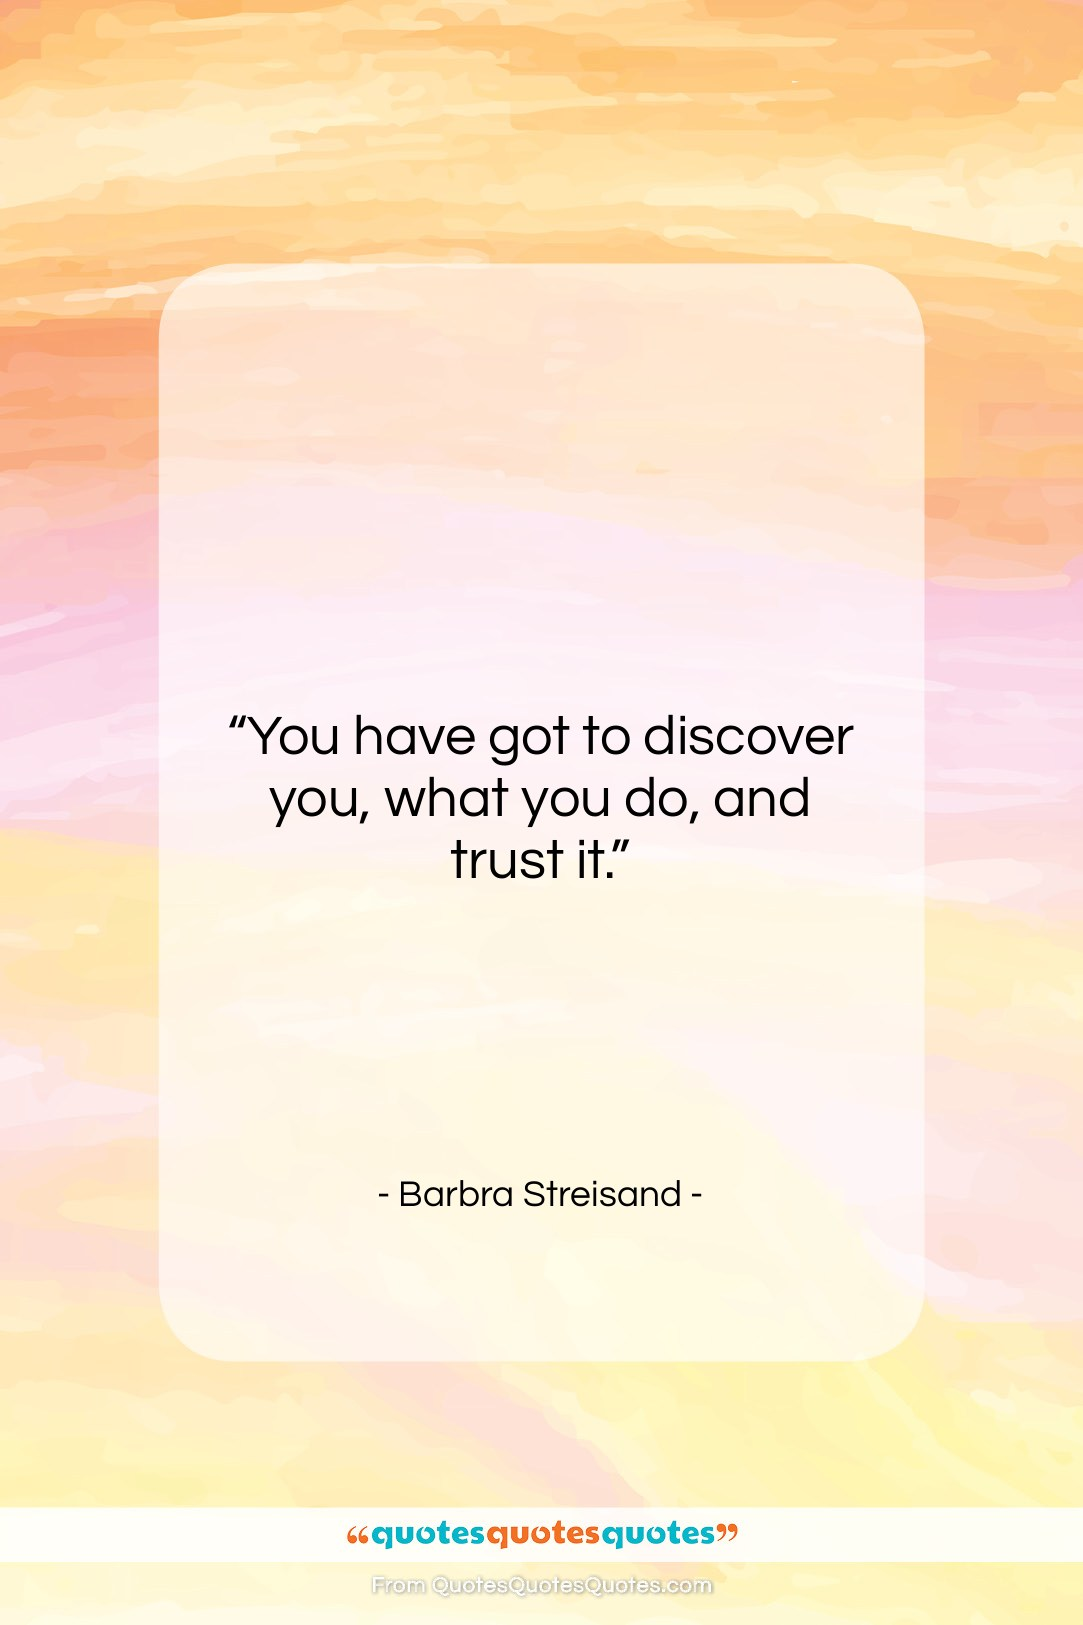 """Barbra Streisand quote: """"You have got to discover you, what…""""- at QuotesQuotesQuotes.com"""